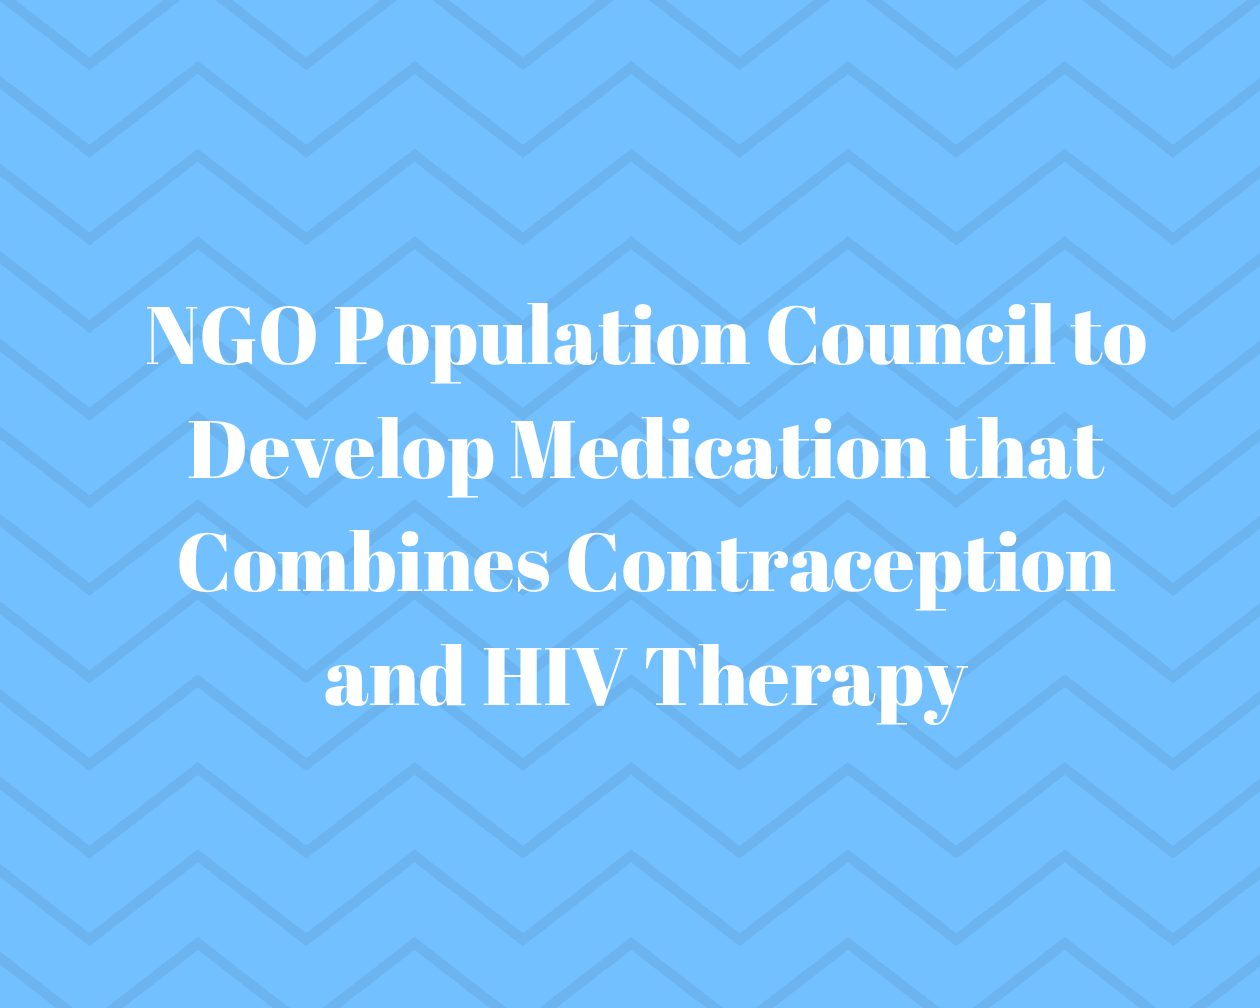 NGO Population Council to Develop Medication that Combines Contraception and HIV Therapy